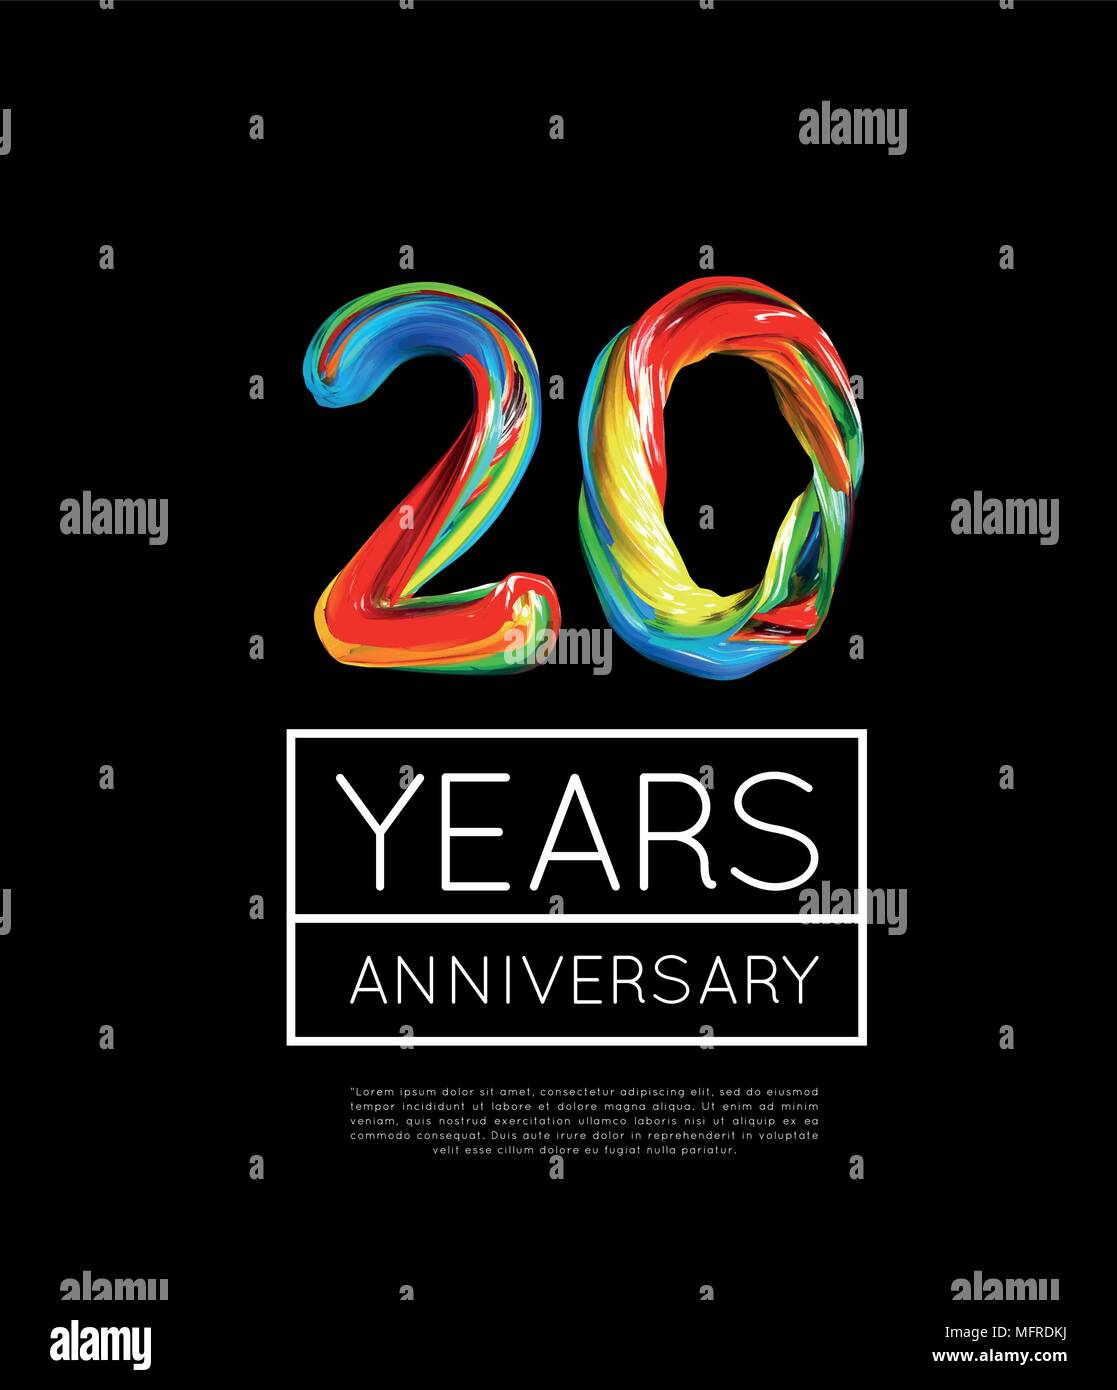 20th Anniversary, congratulation for company or person on black background - Stock Vector